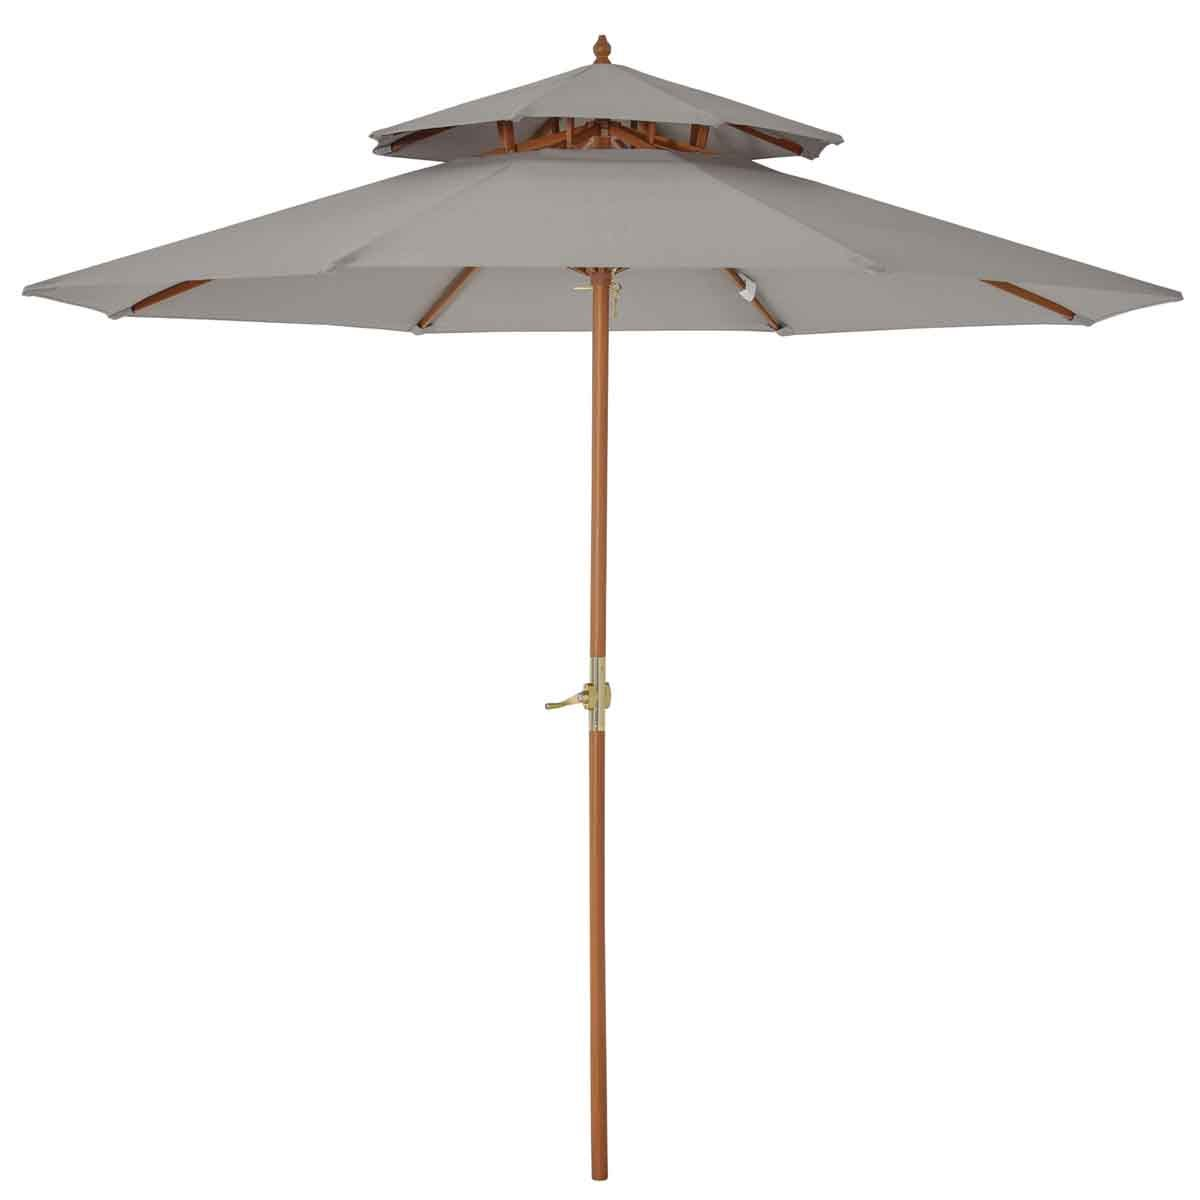 Outsunny Wooden Patio Parasol (base not included) - Grey